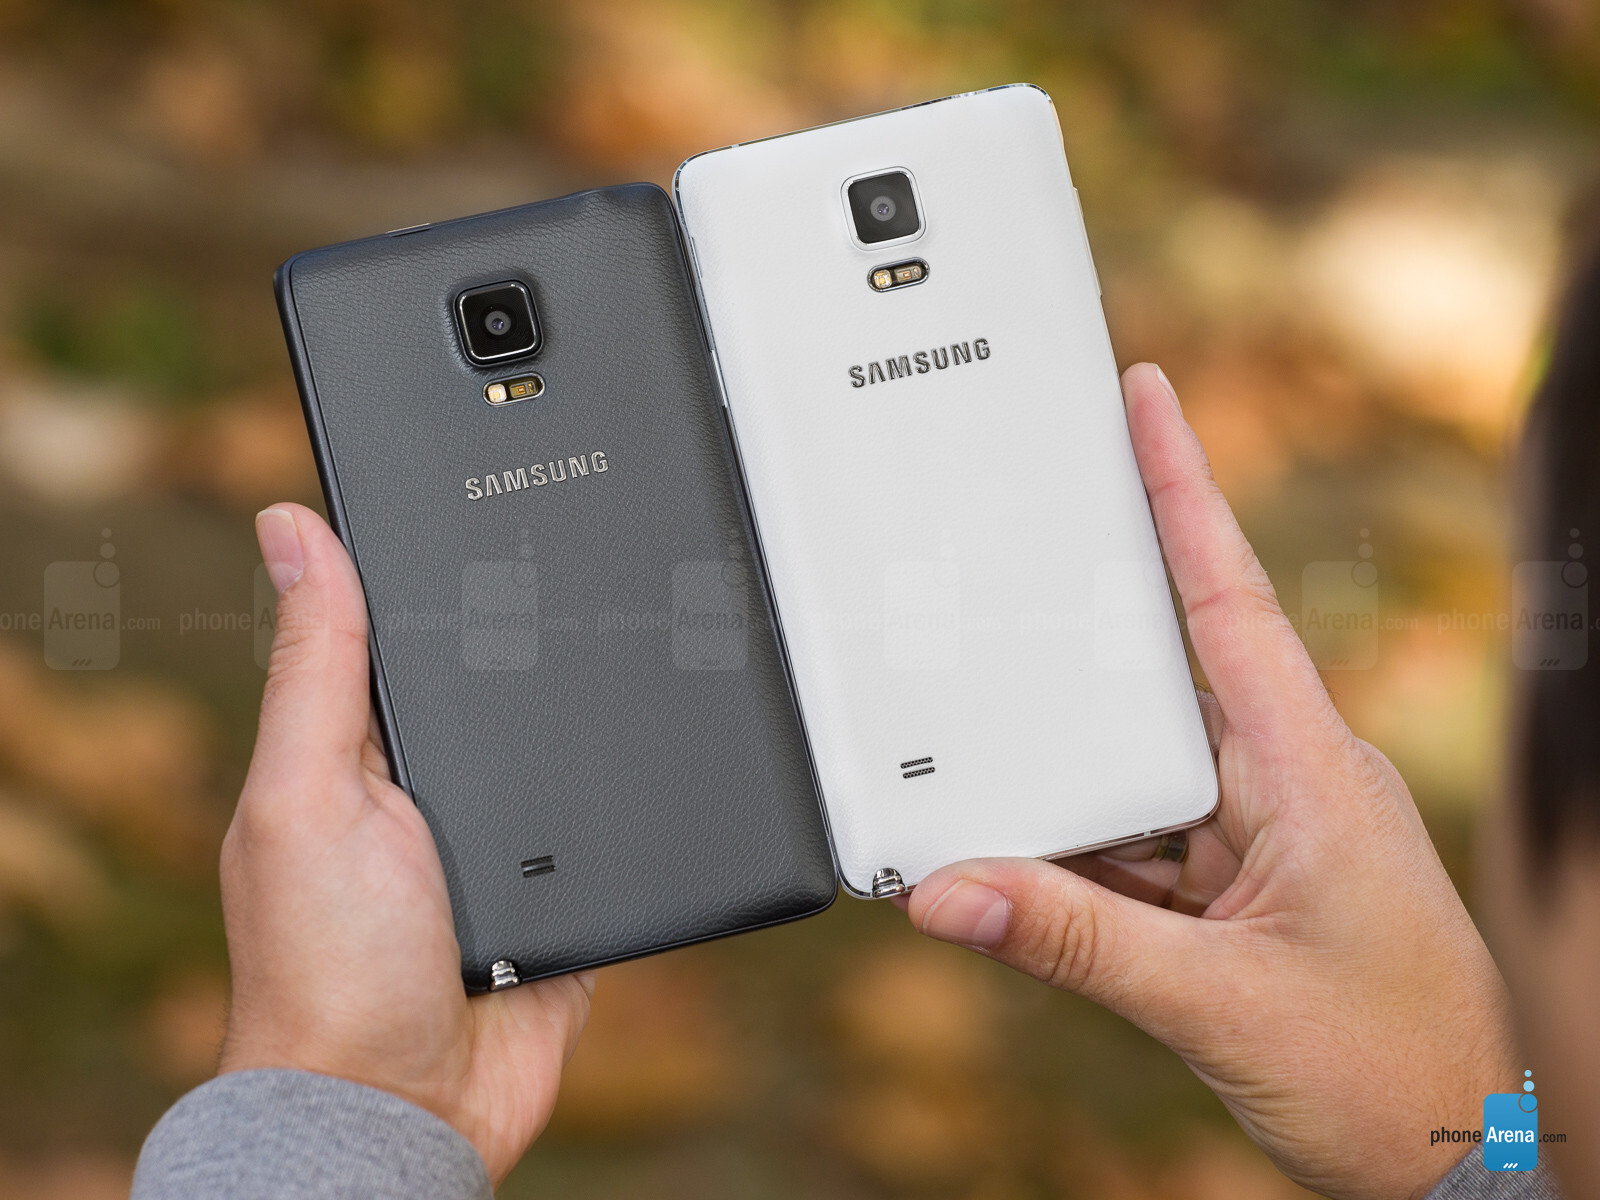 Samsung Galaxy Note Edge Vs Samsung Galaxy Note 4